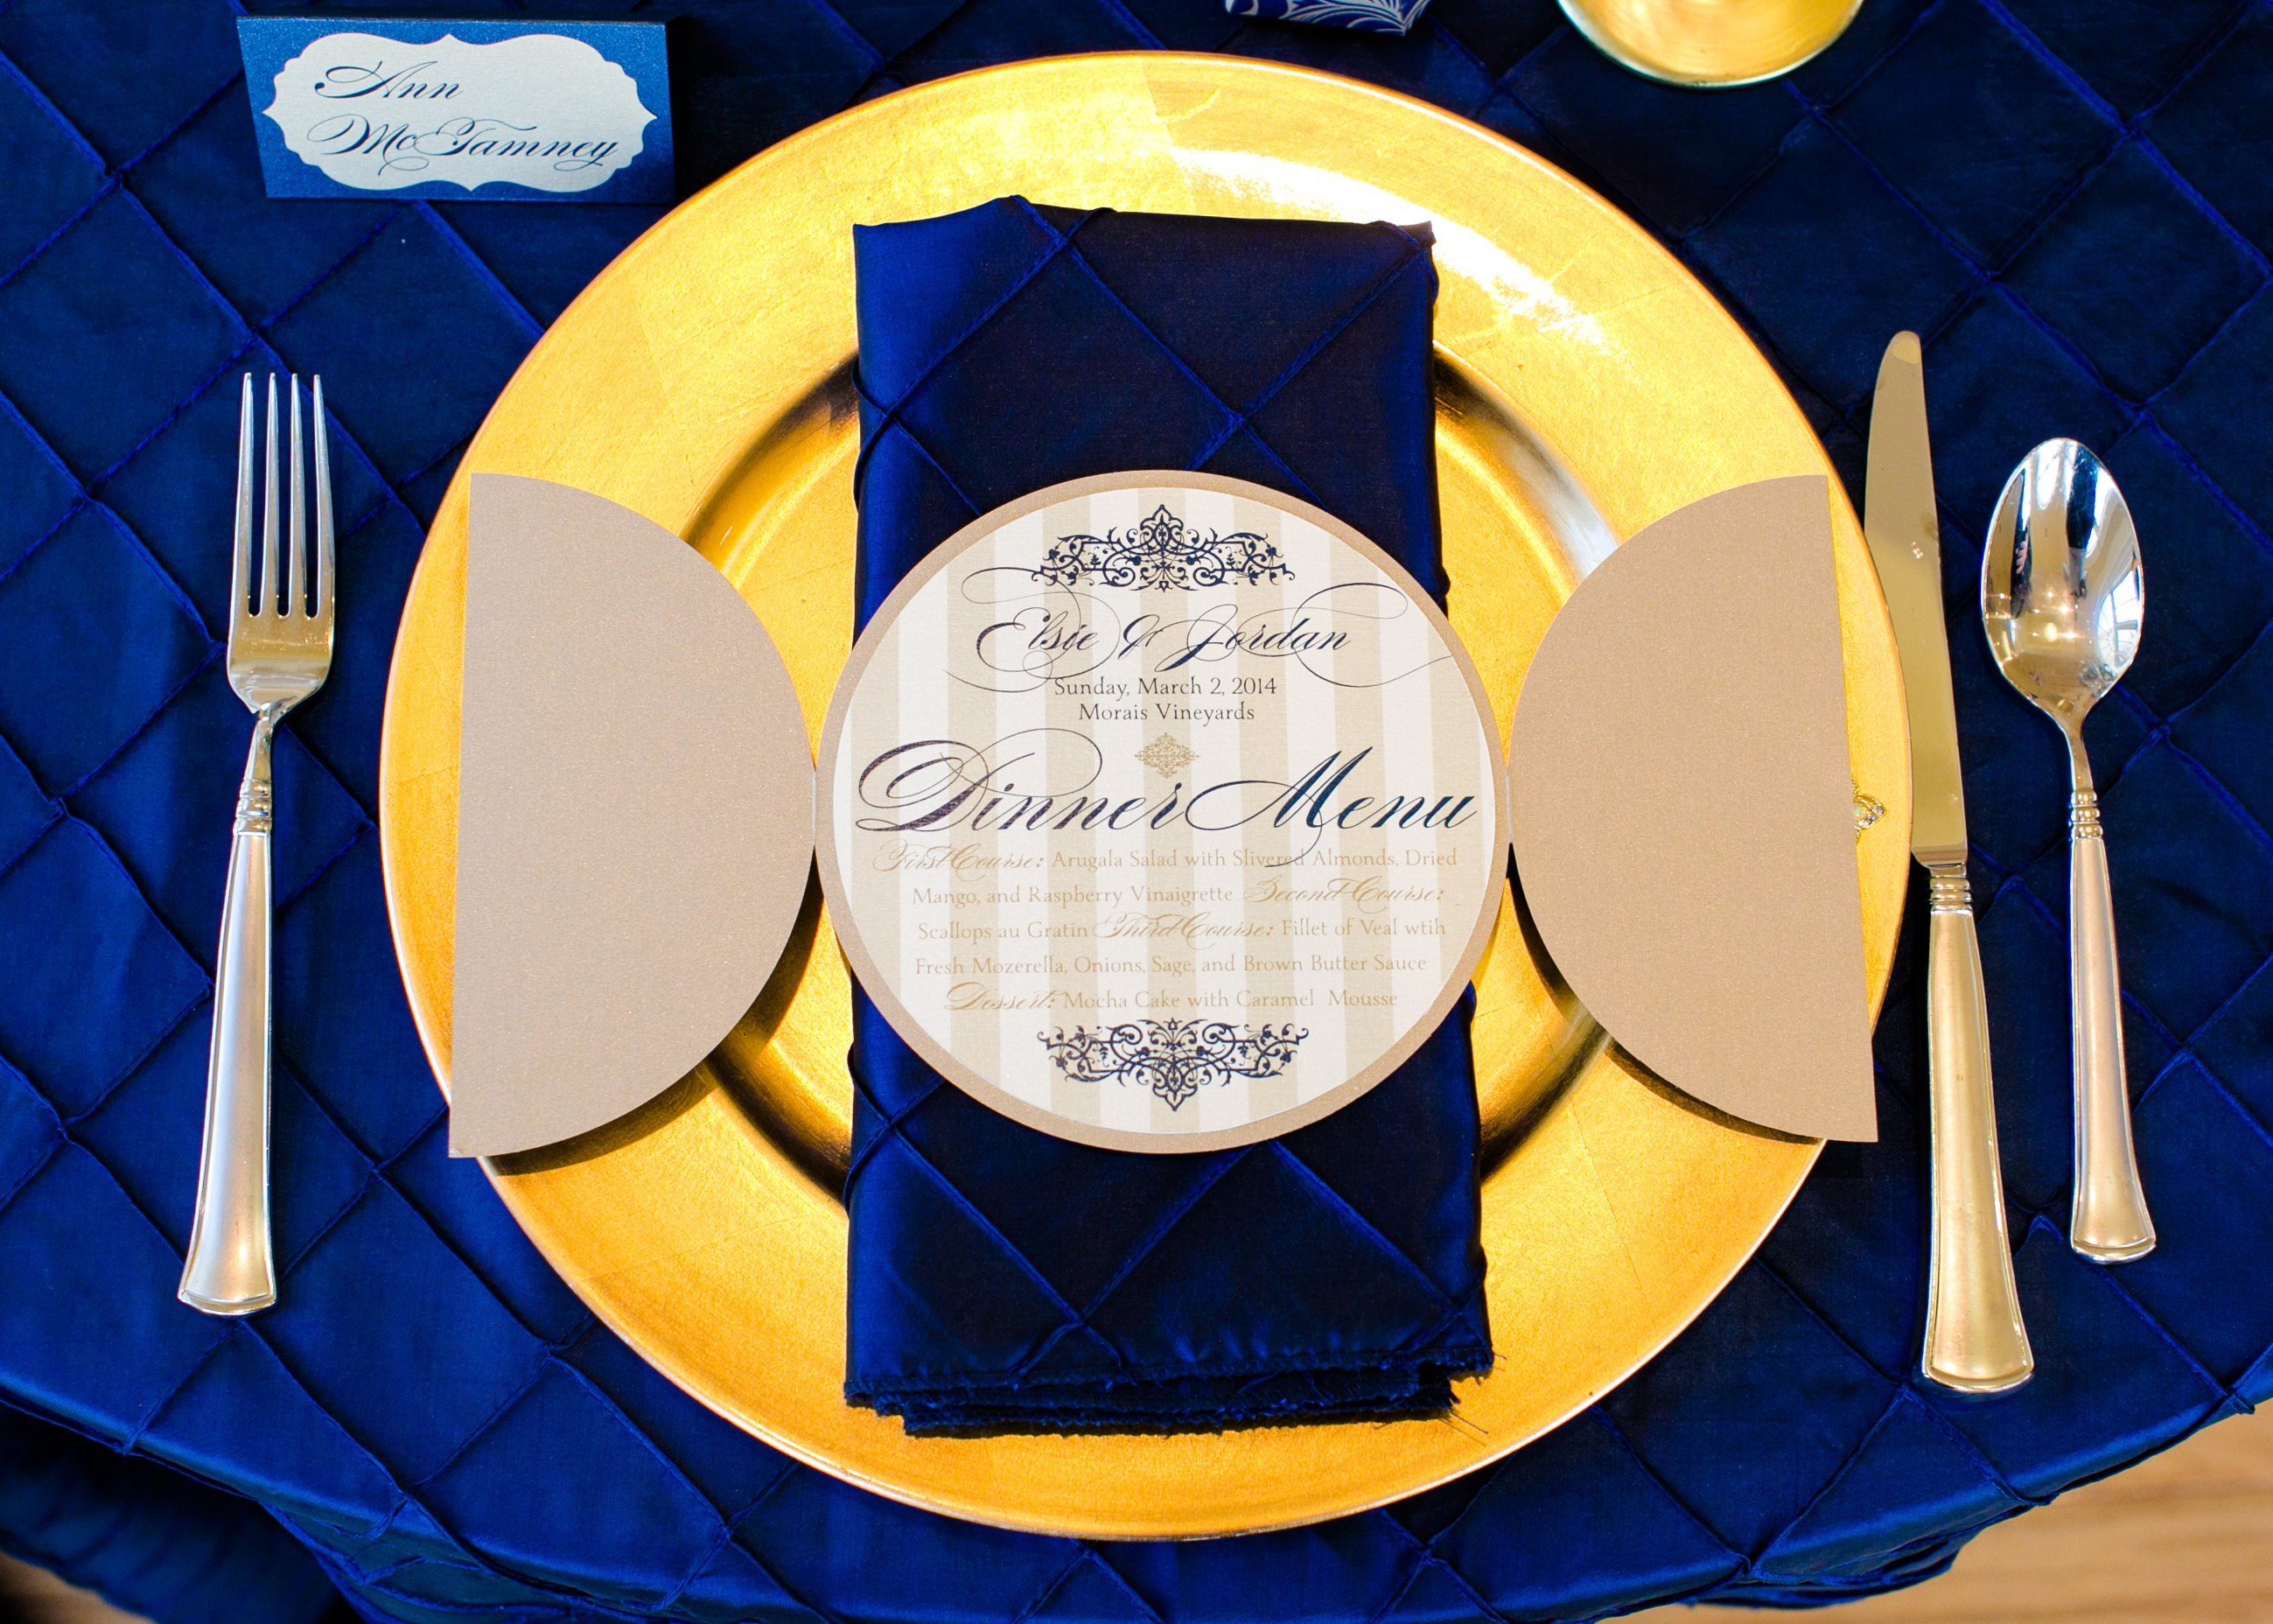 French Luxe Dinner Menu, elegant filigree, gold, navy